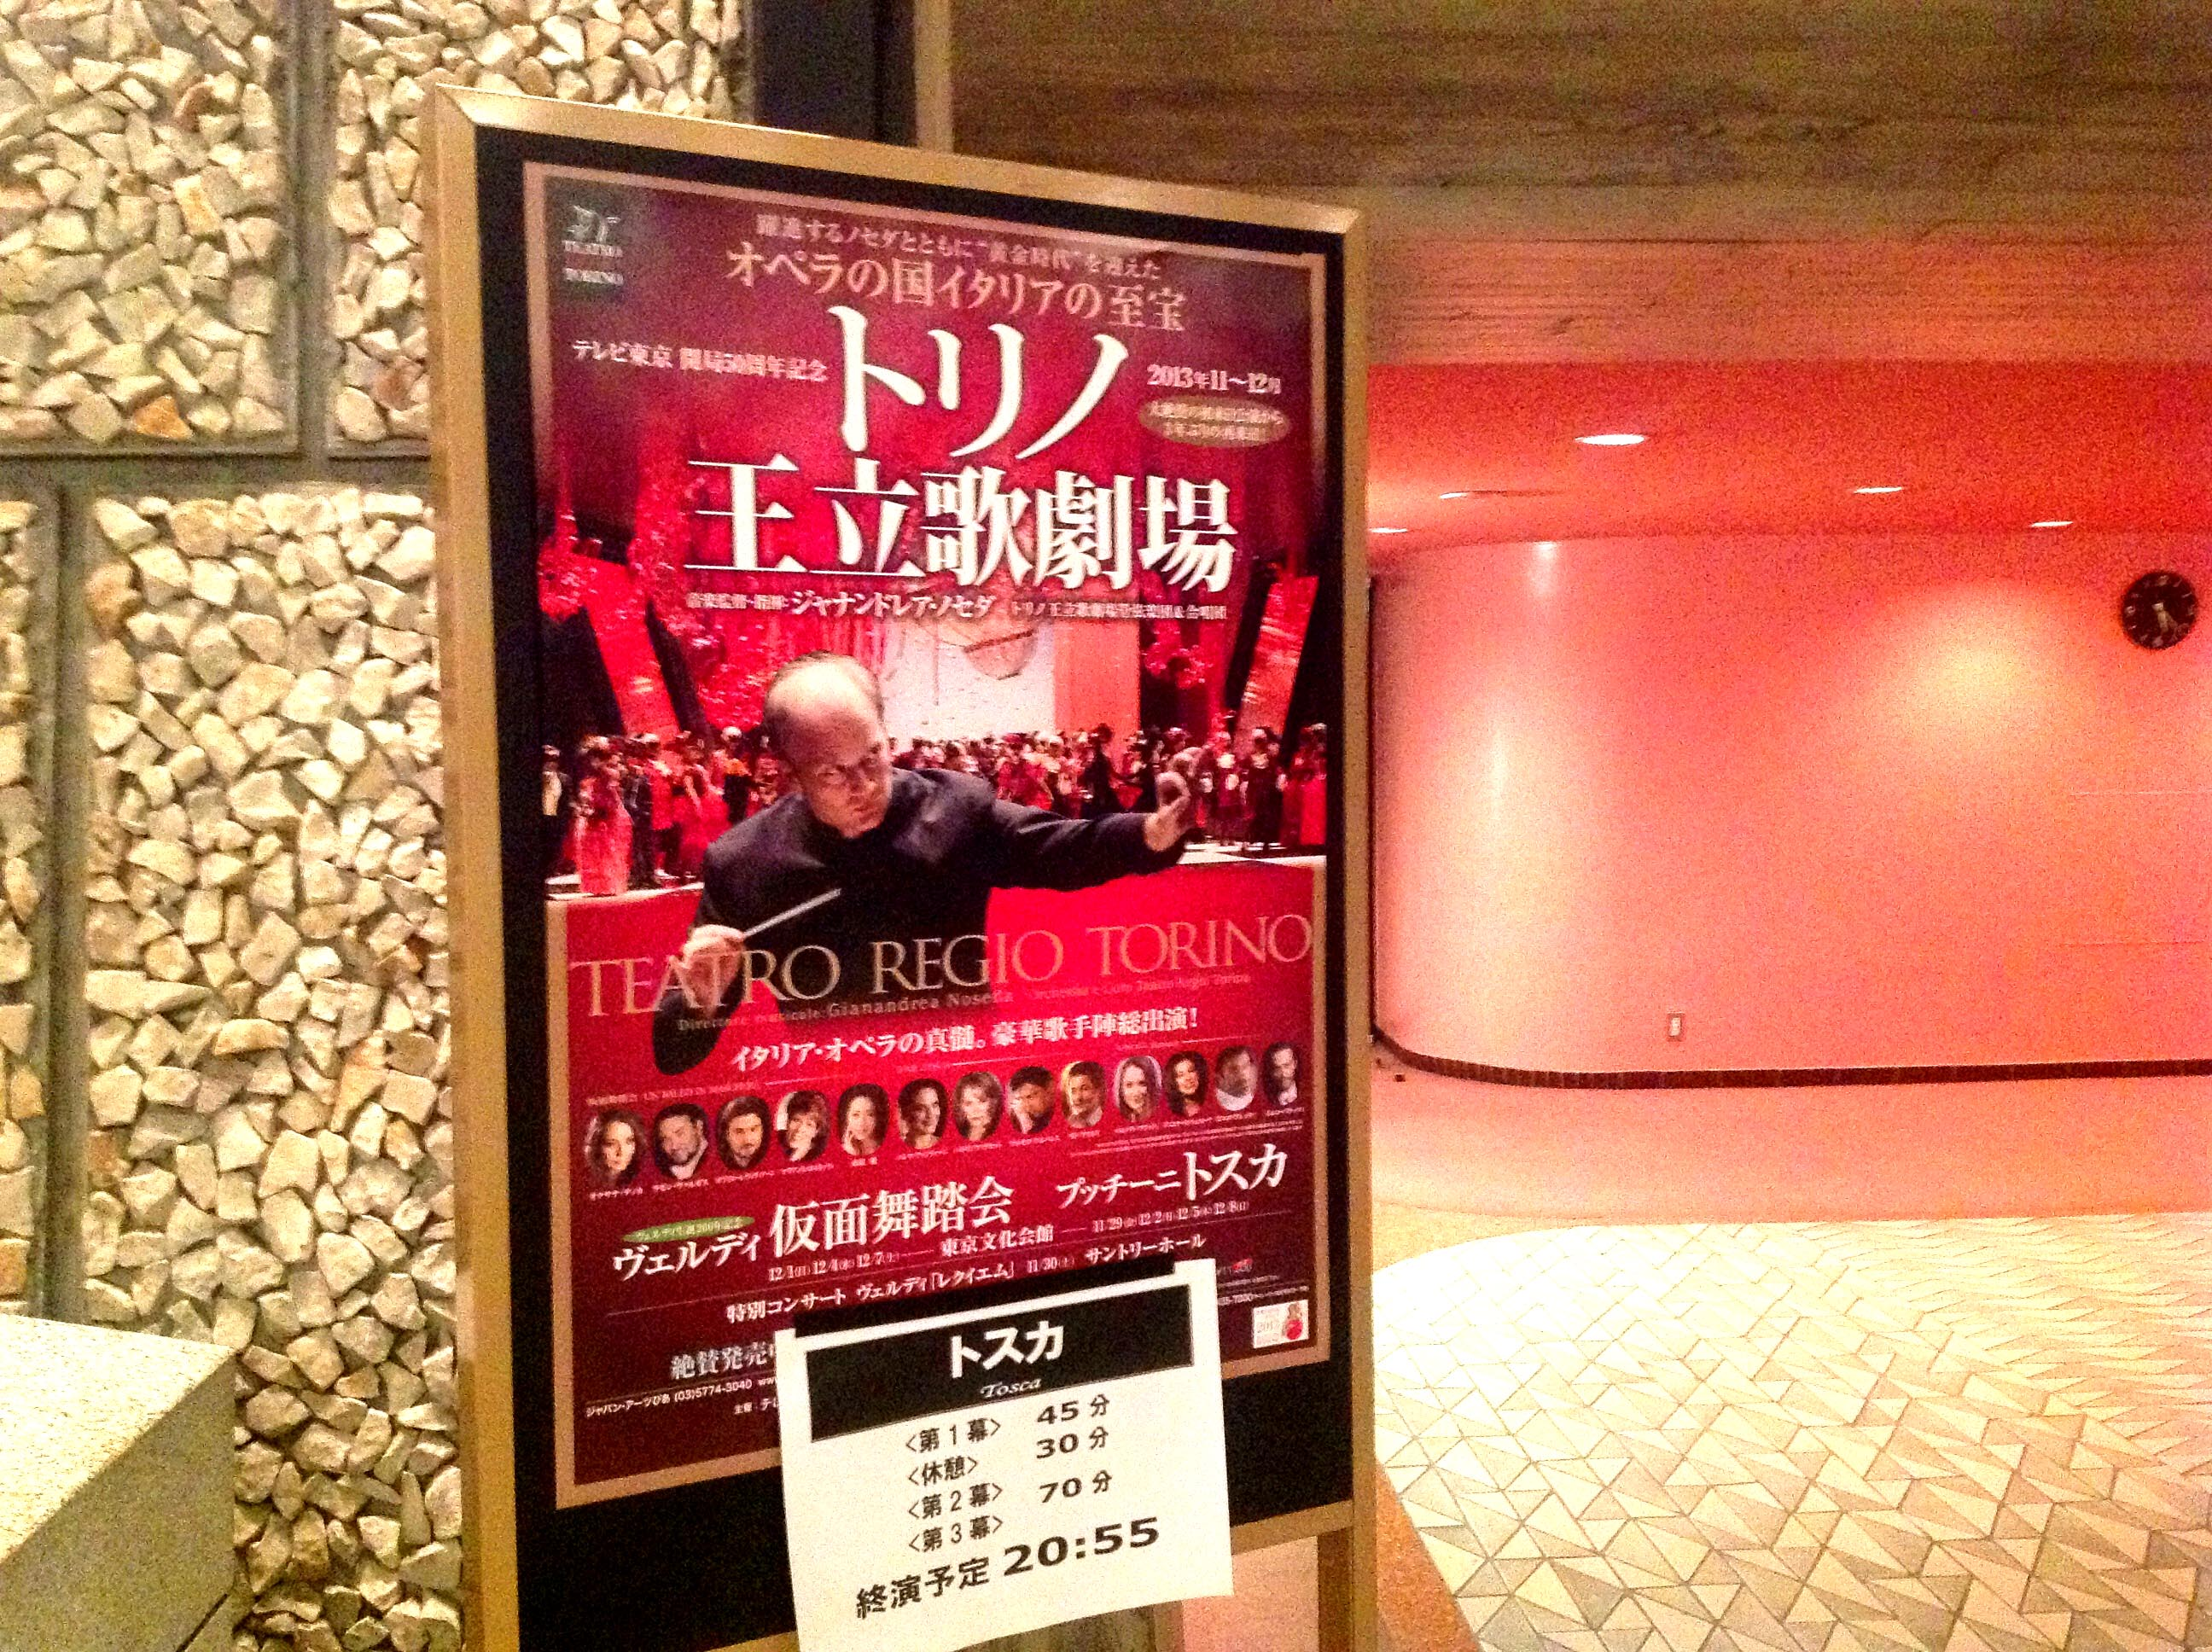 The playbill of Japan Tour affixed at the Bunka Kaikan in TOkyo